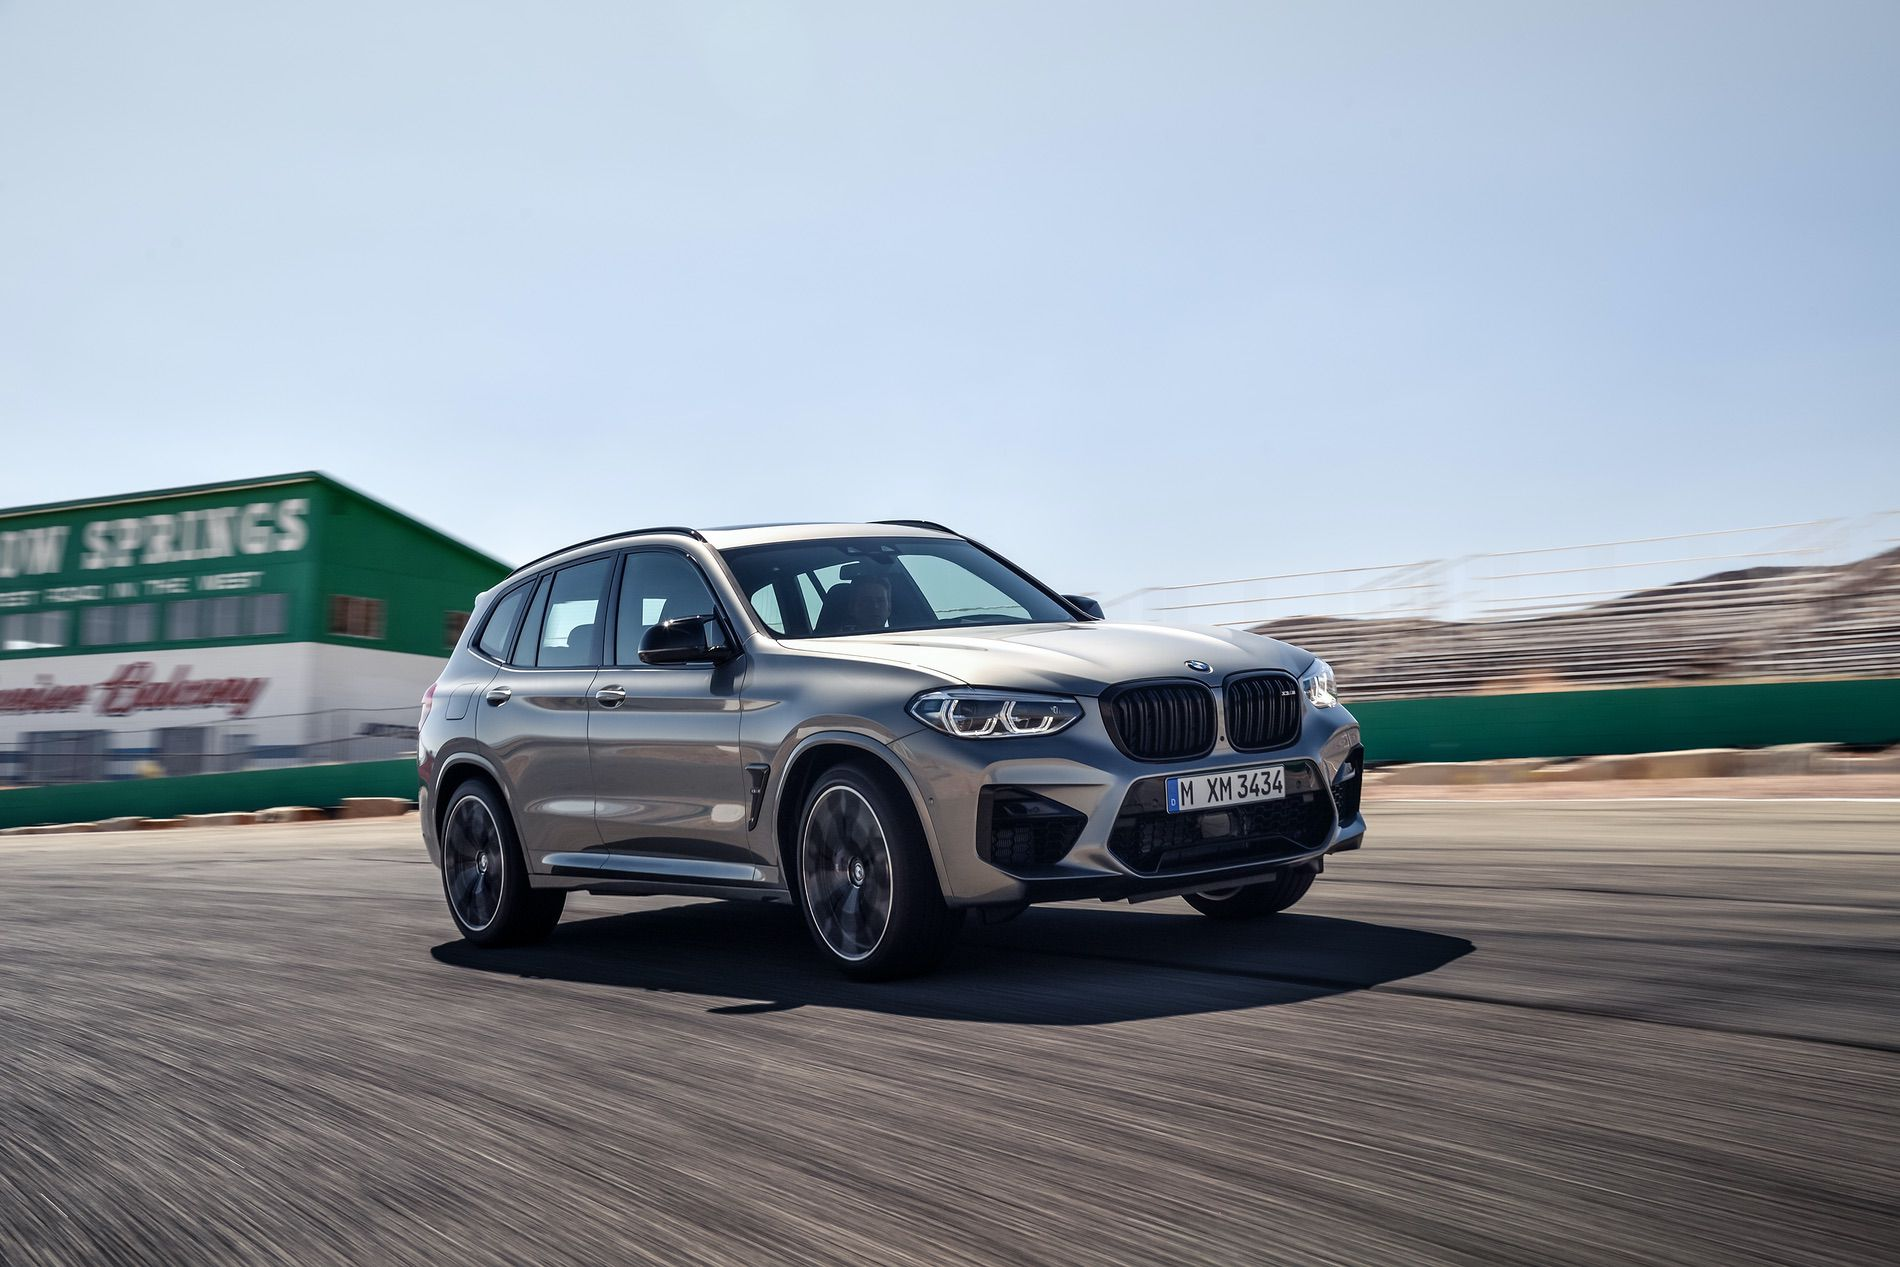 BMW X3 M to Cost $69,900, X4 M to Start at $73,400